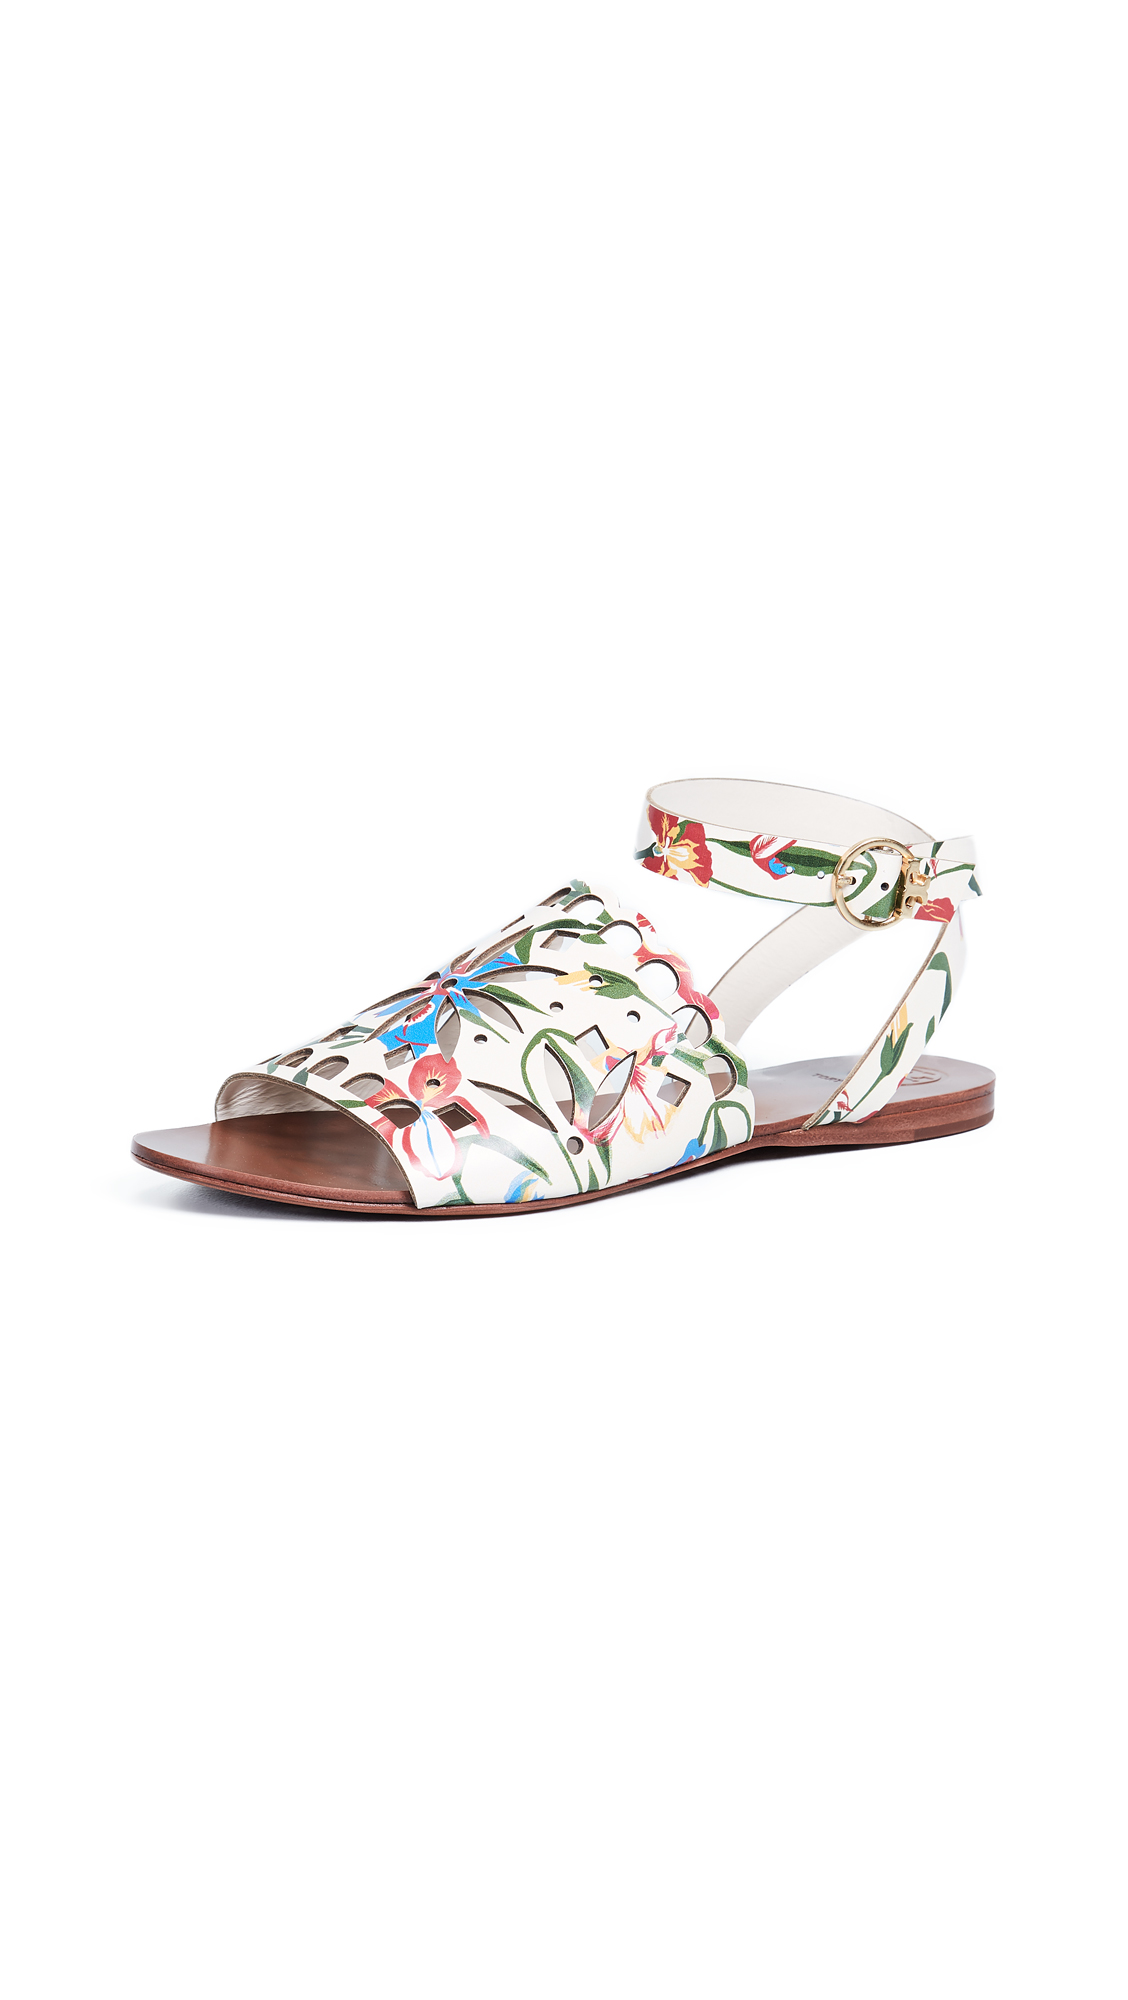 Tory Burch May Flat Sandals - Painted Iris